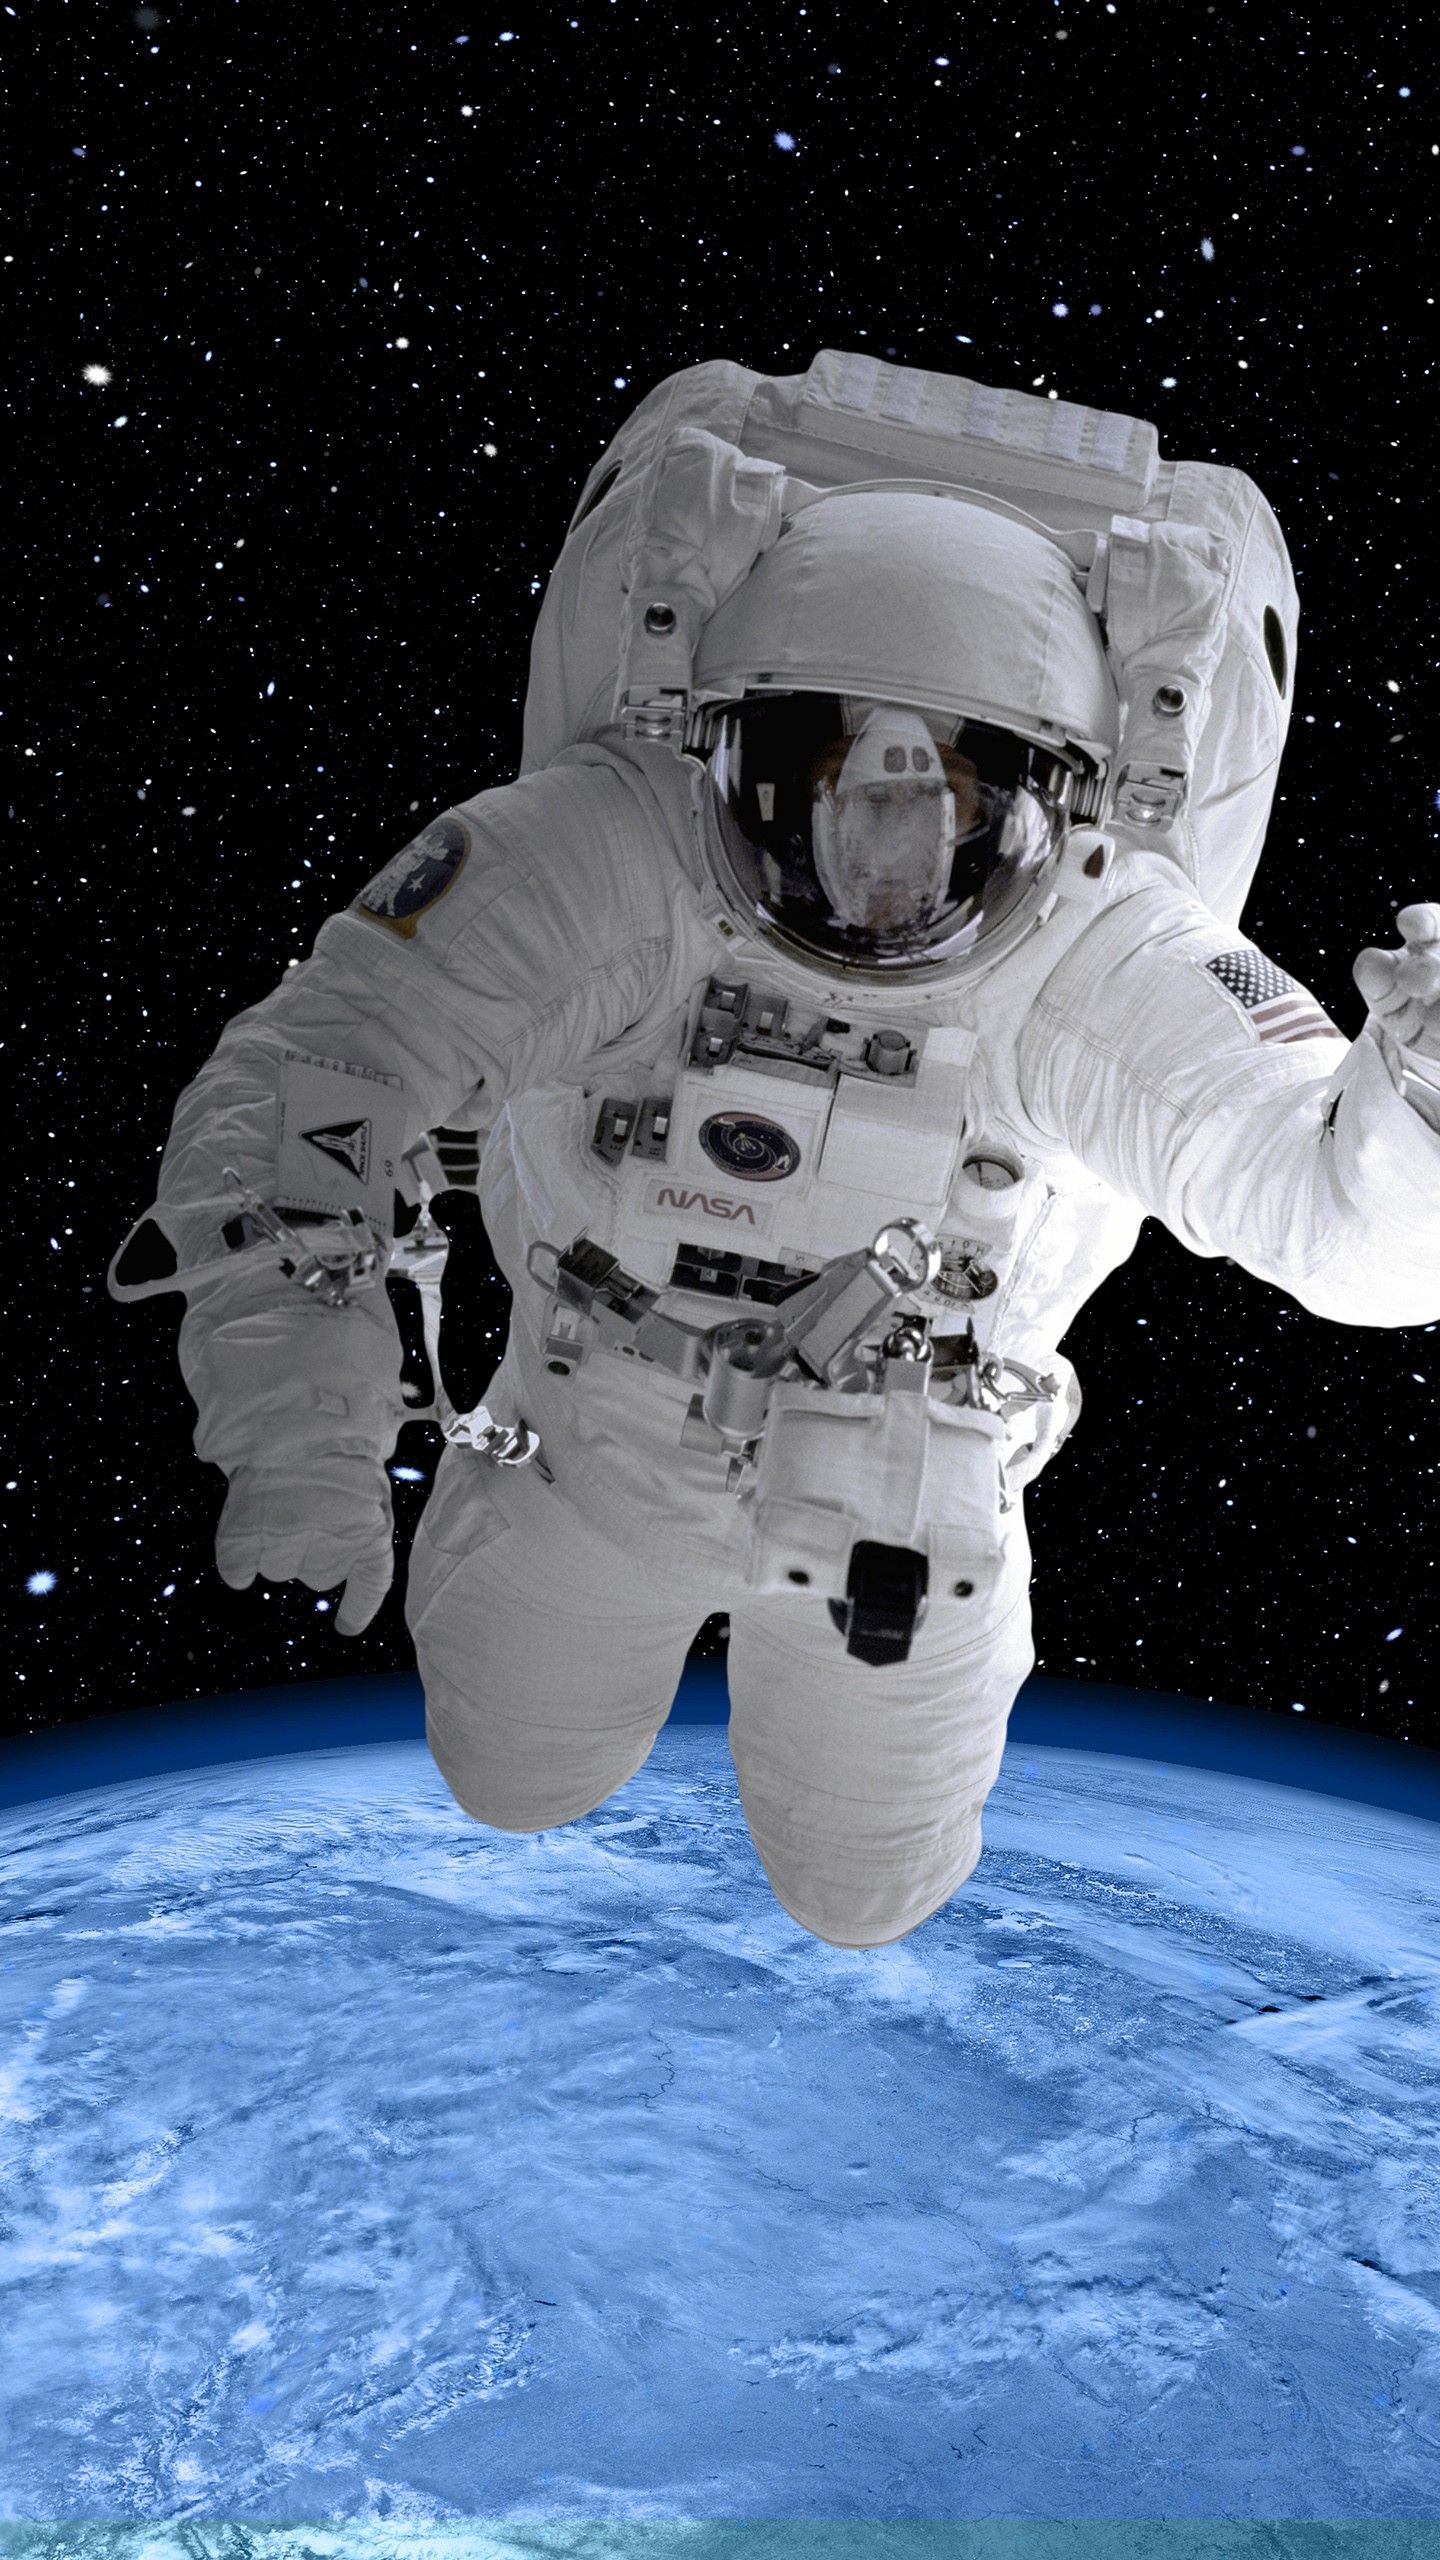 Wallpapers Hd Iphone 5s Astronaut In Space Suit 4k 8k Wallpapers Hd Wallpapers